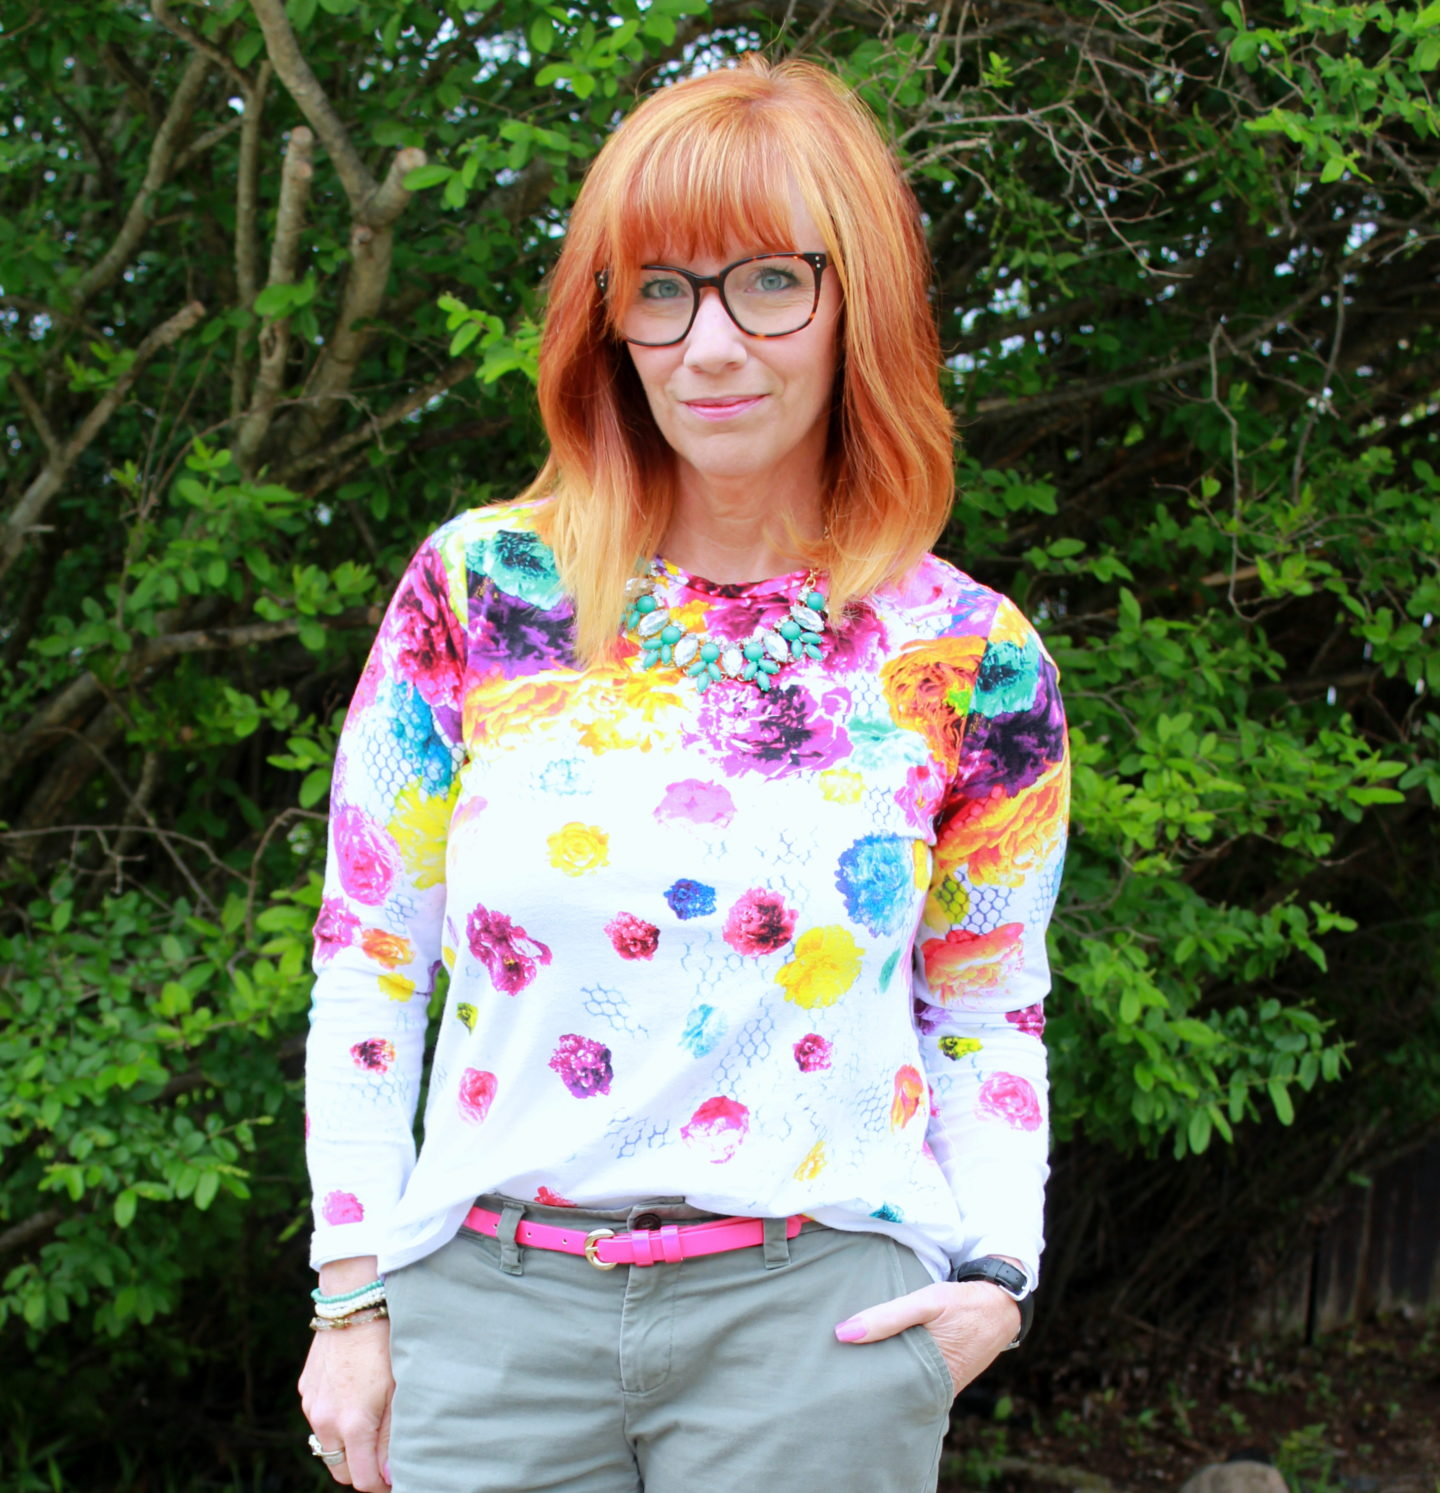 Floral Print Tee & Khakis: Nothing But A Number